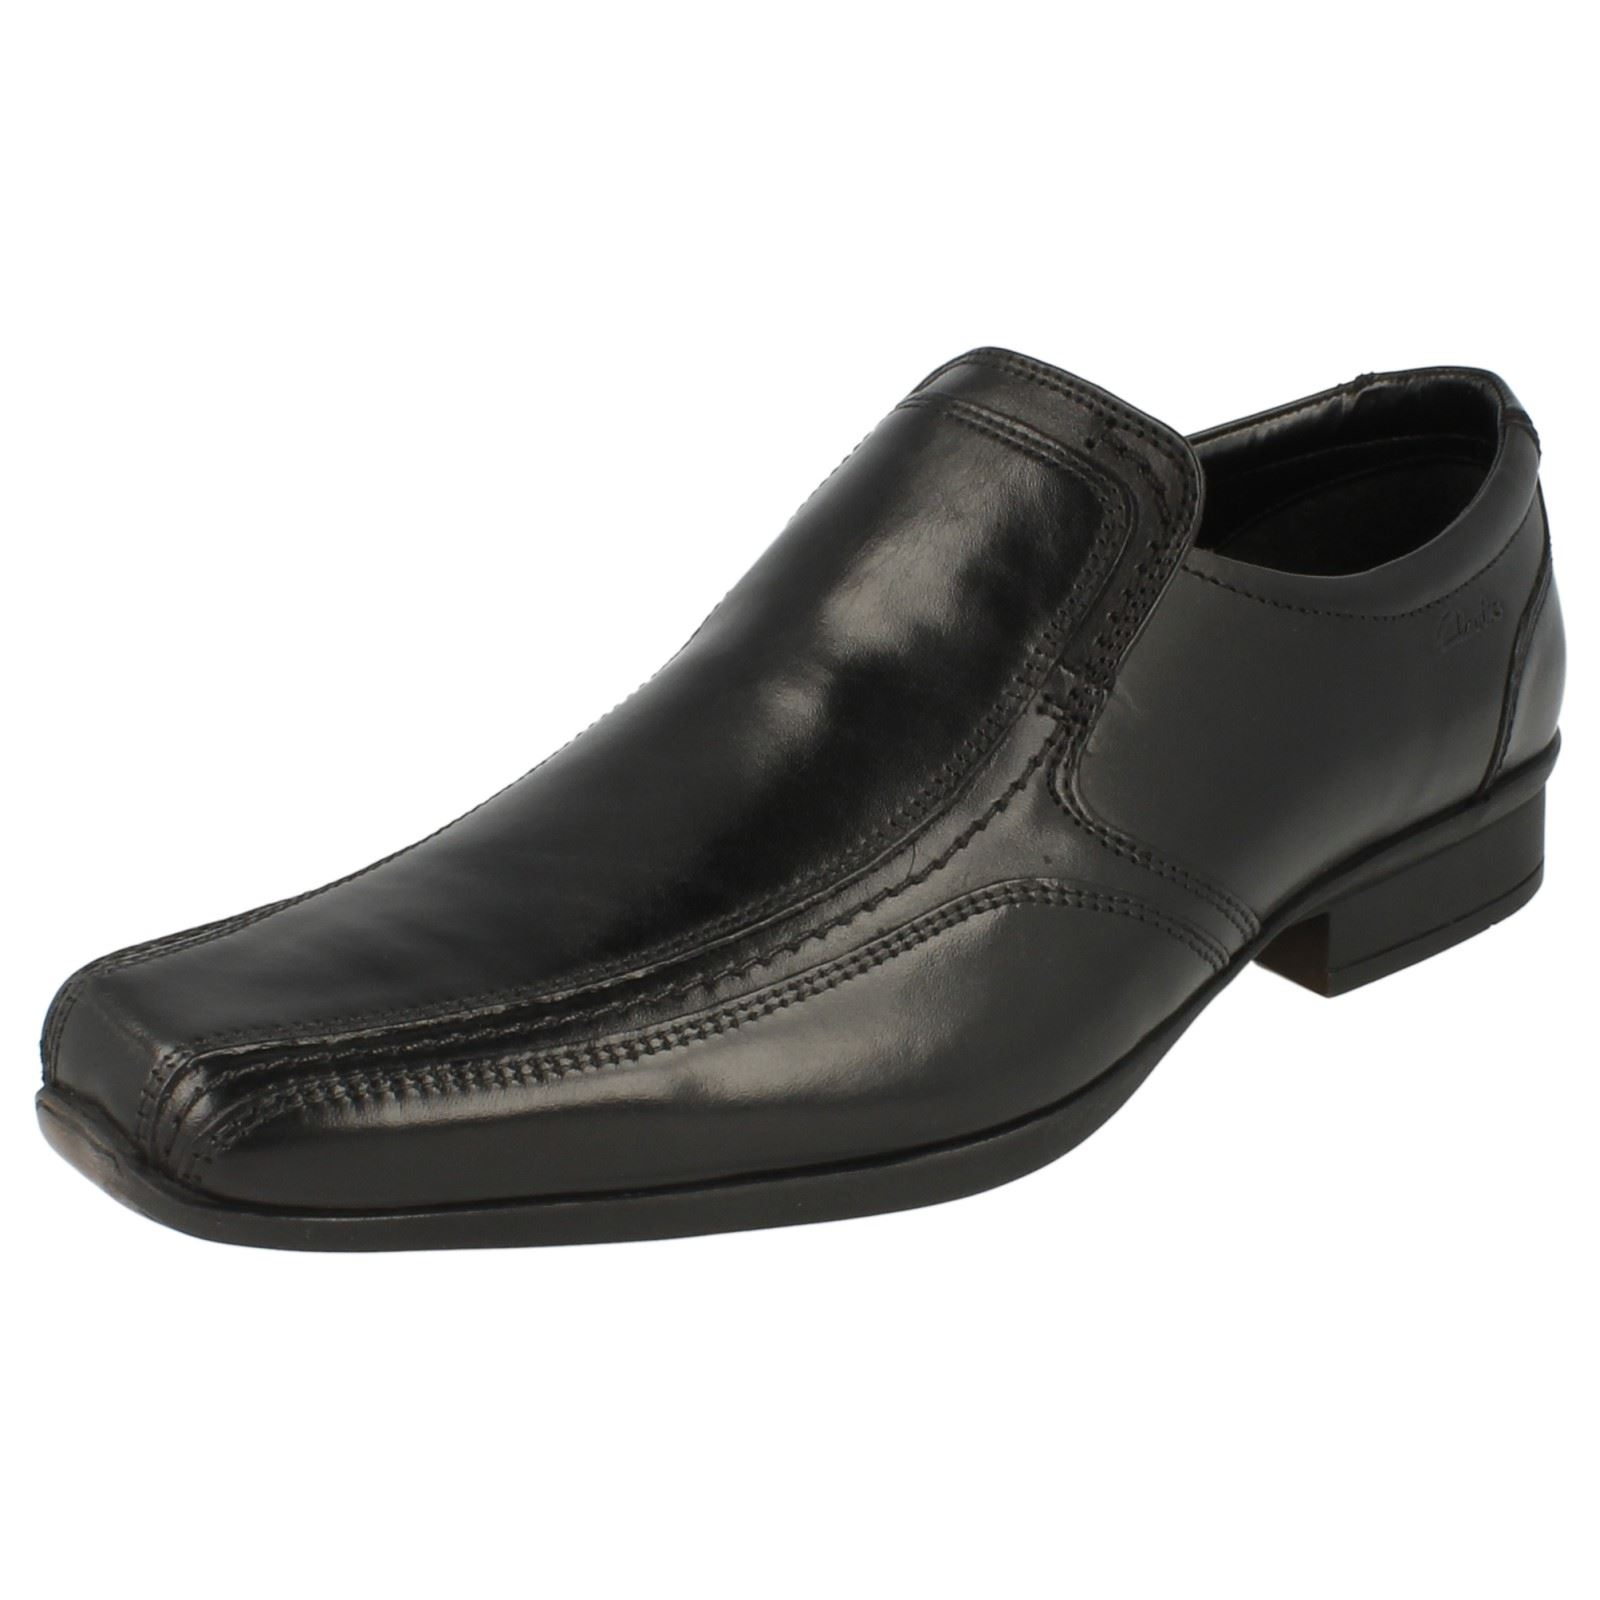 Clarks Baffix Step Black Leather Slip On Shoe G Fitting Kett 38B